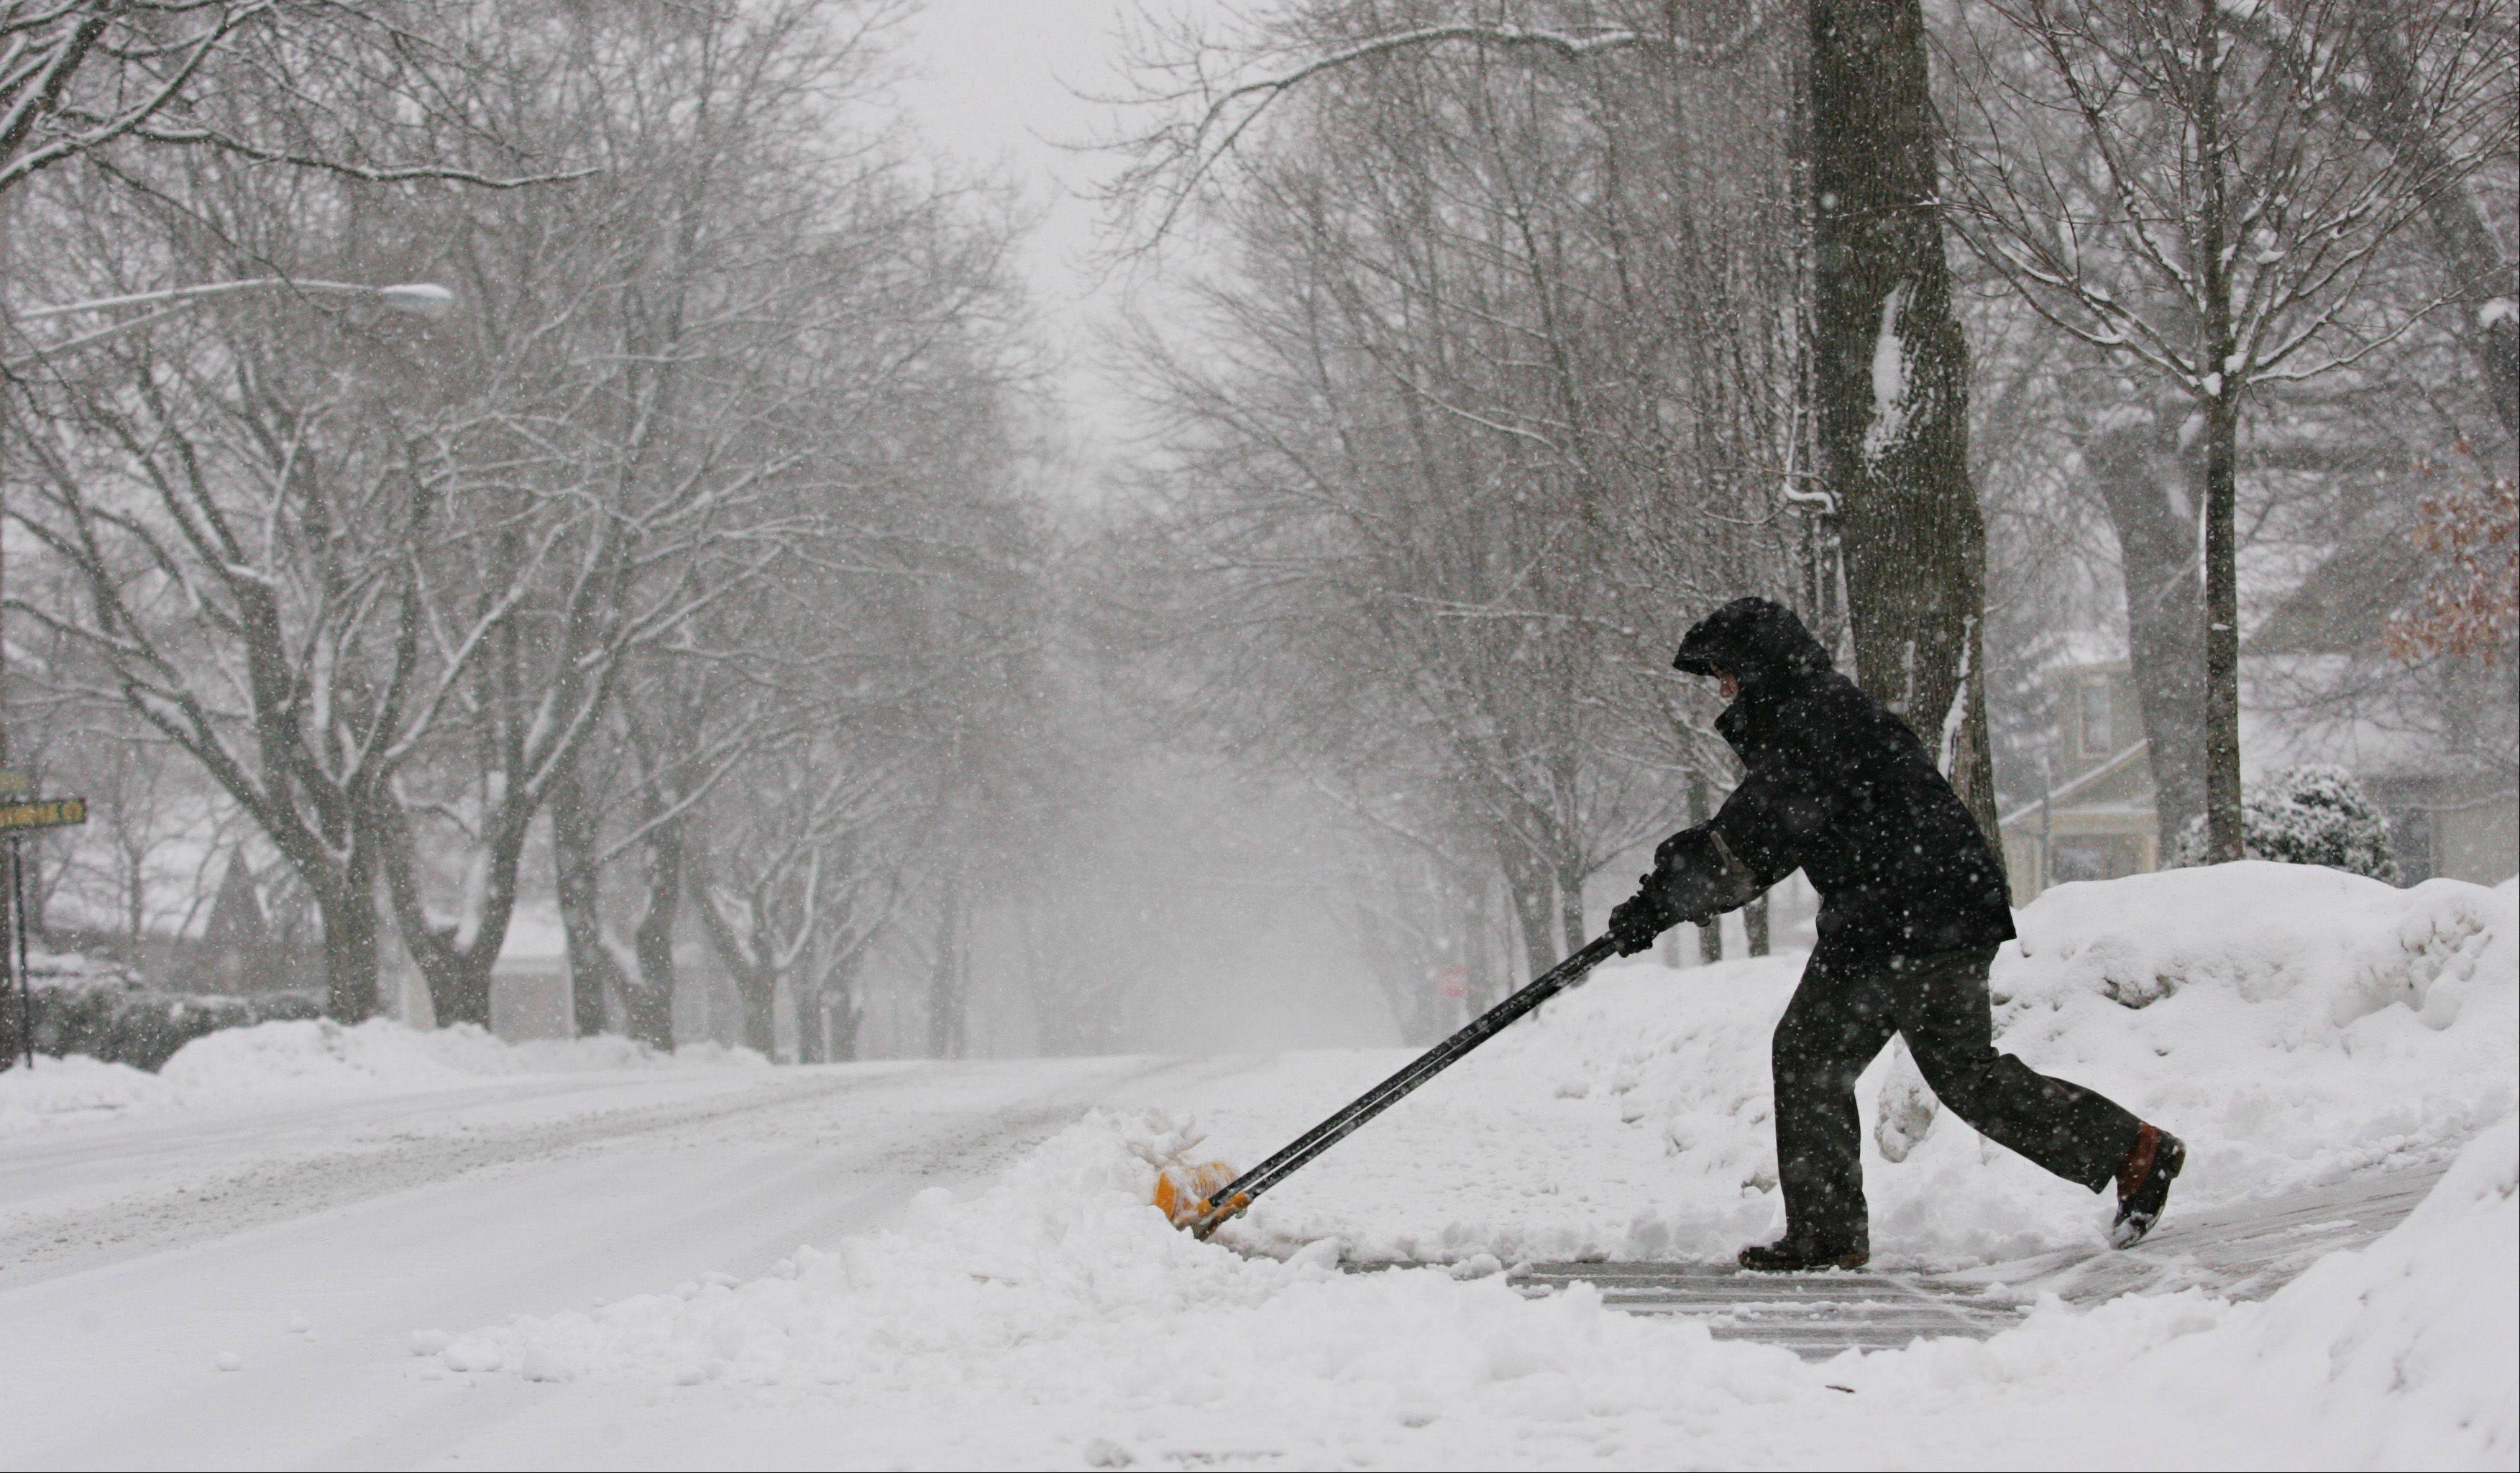 Jay Guevara, of West Dundee, shovels snow from his driveway into the street Tuesday morning as the largest winter storm of the season begins to intensify. Guevara was clearing a path to get to work, which thankfully wasn't too far up the road in Algonquin.